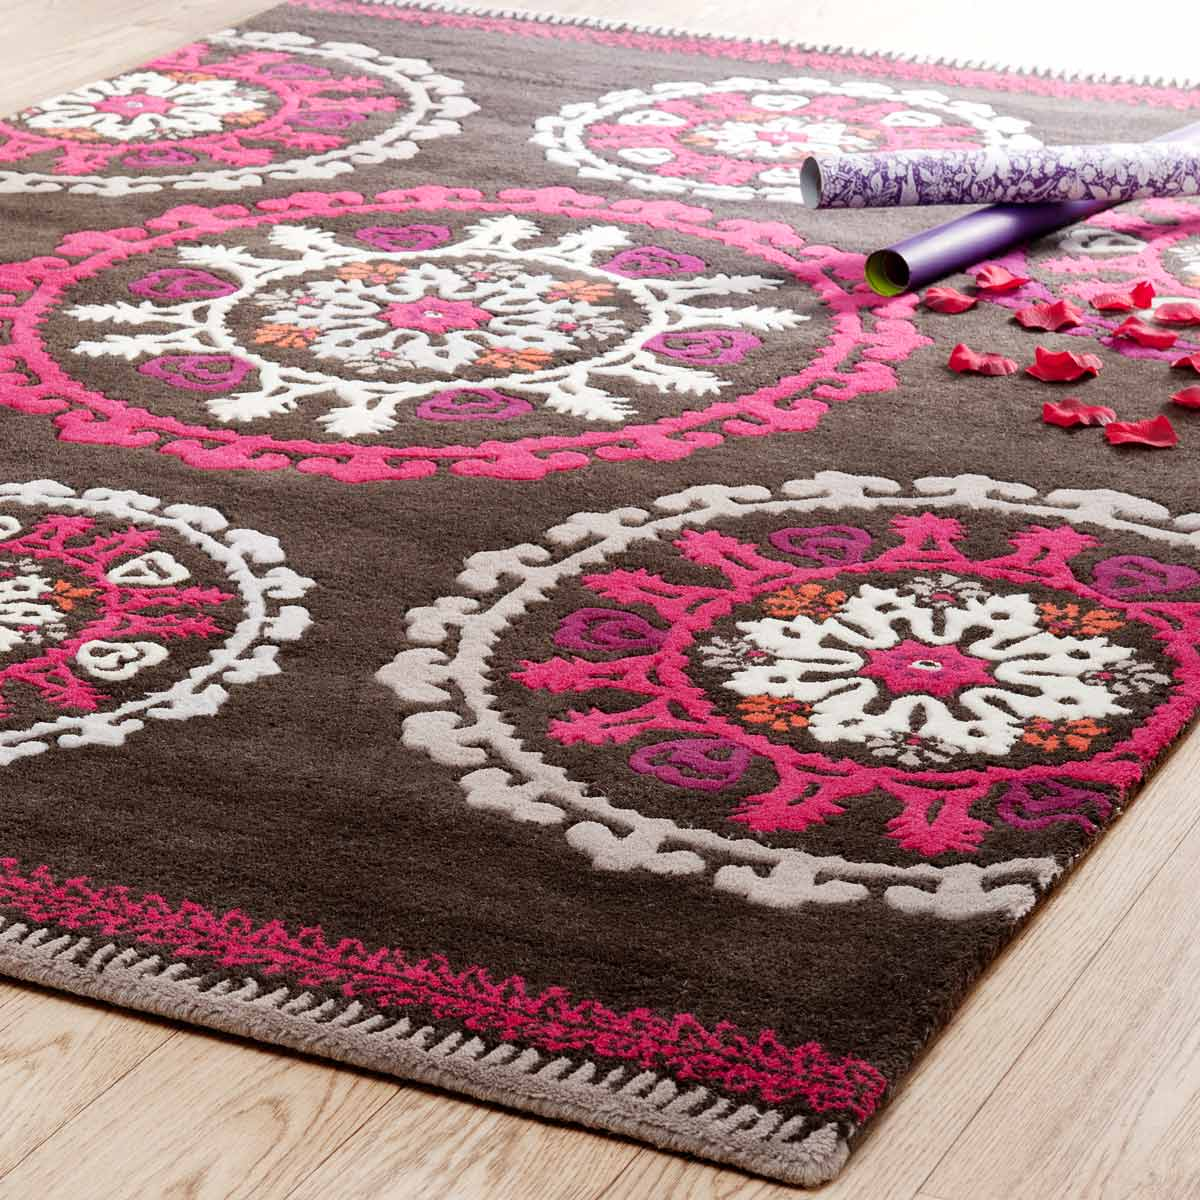 Moroccan Style - Eastern Flair For Your Home